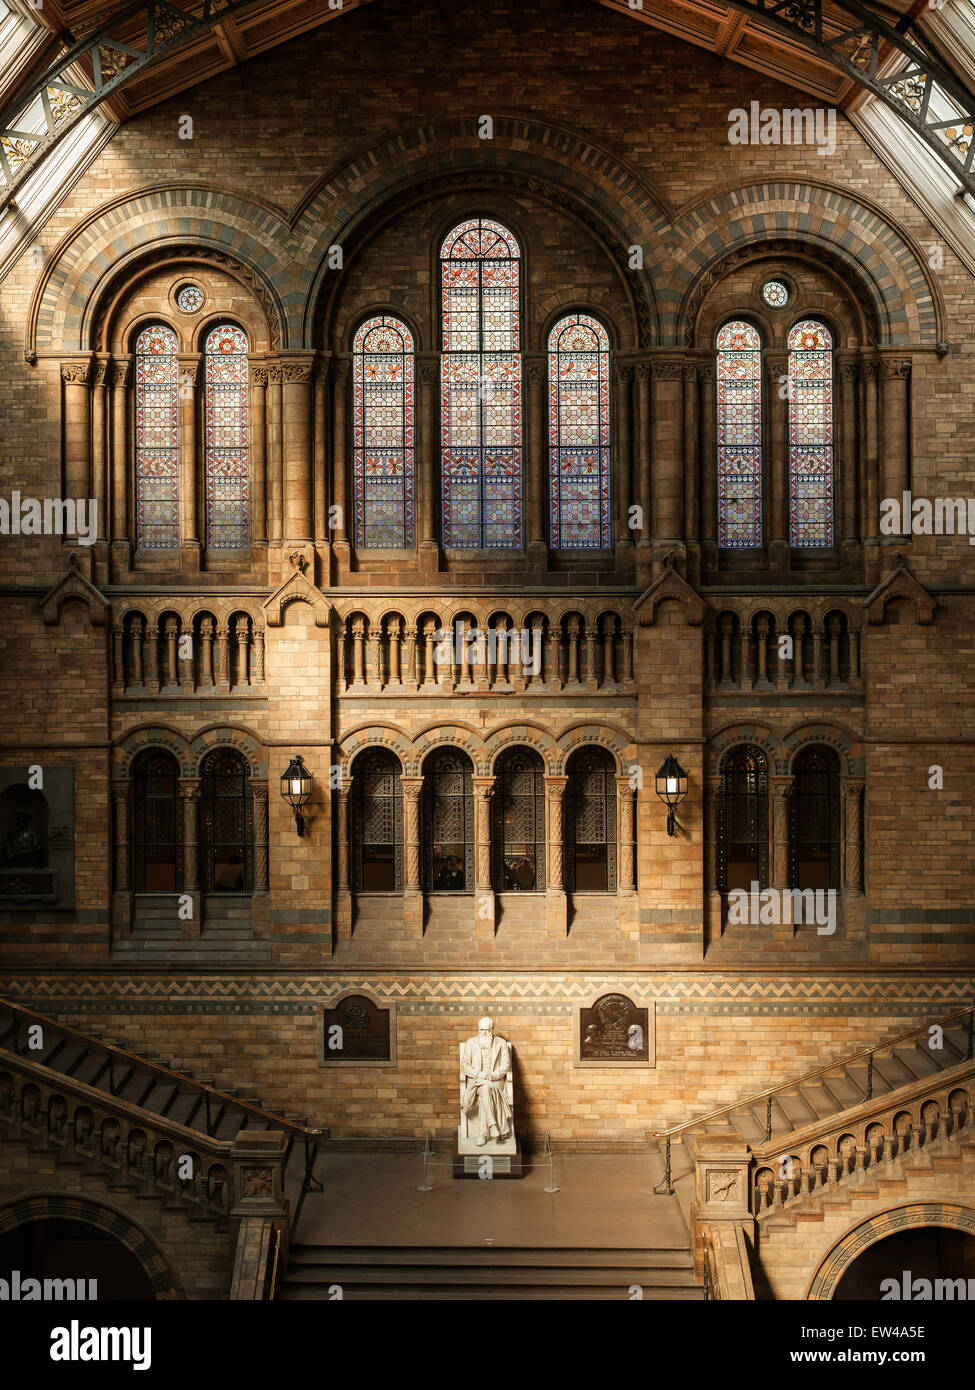 Statue of Darwin in the Natural History Museum, London, England. - Stock Image